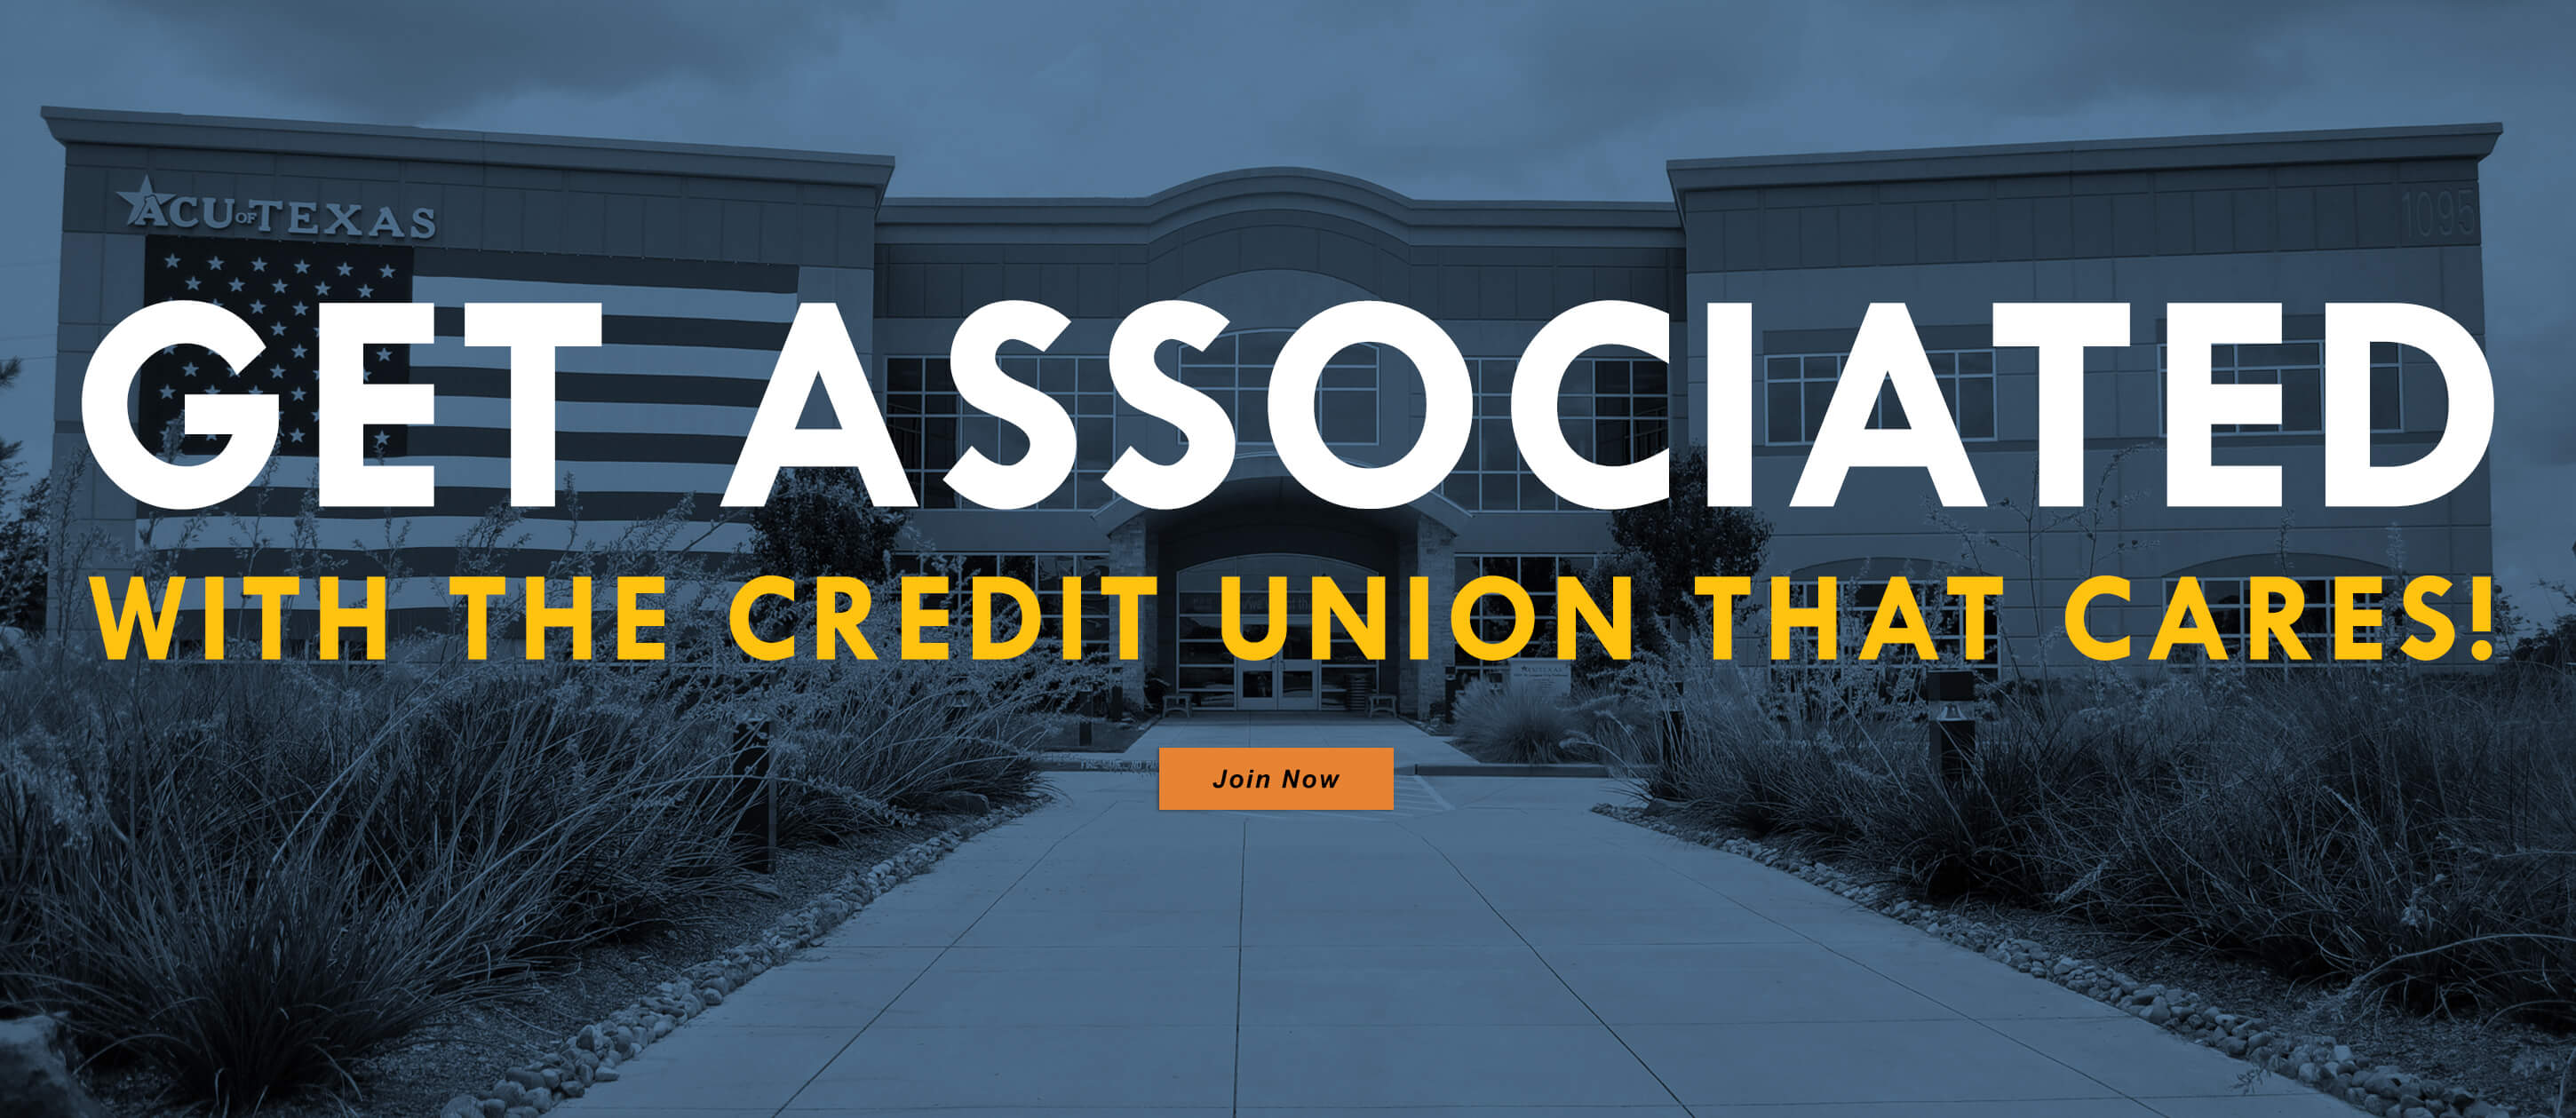 Get Associated with the Credit Union that Cares - Join Now